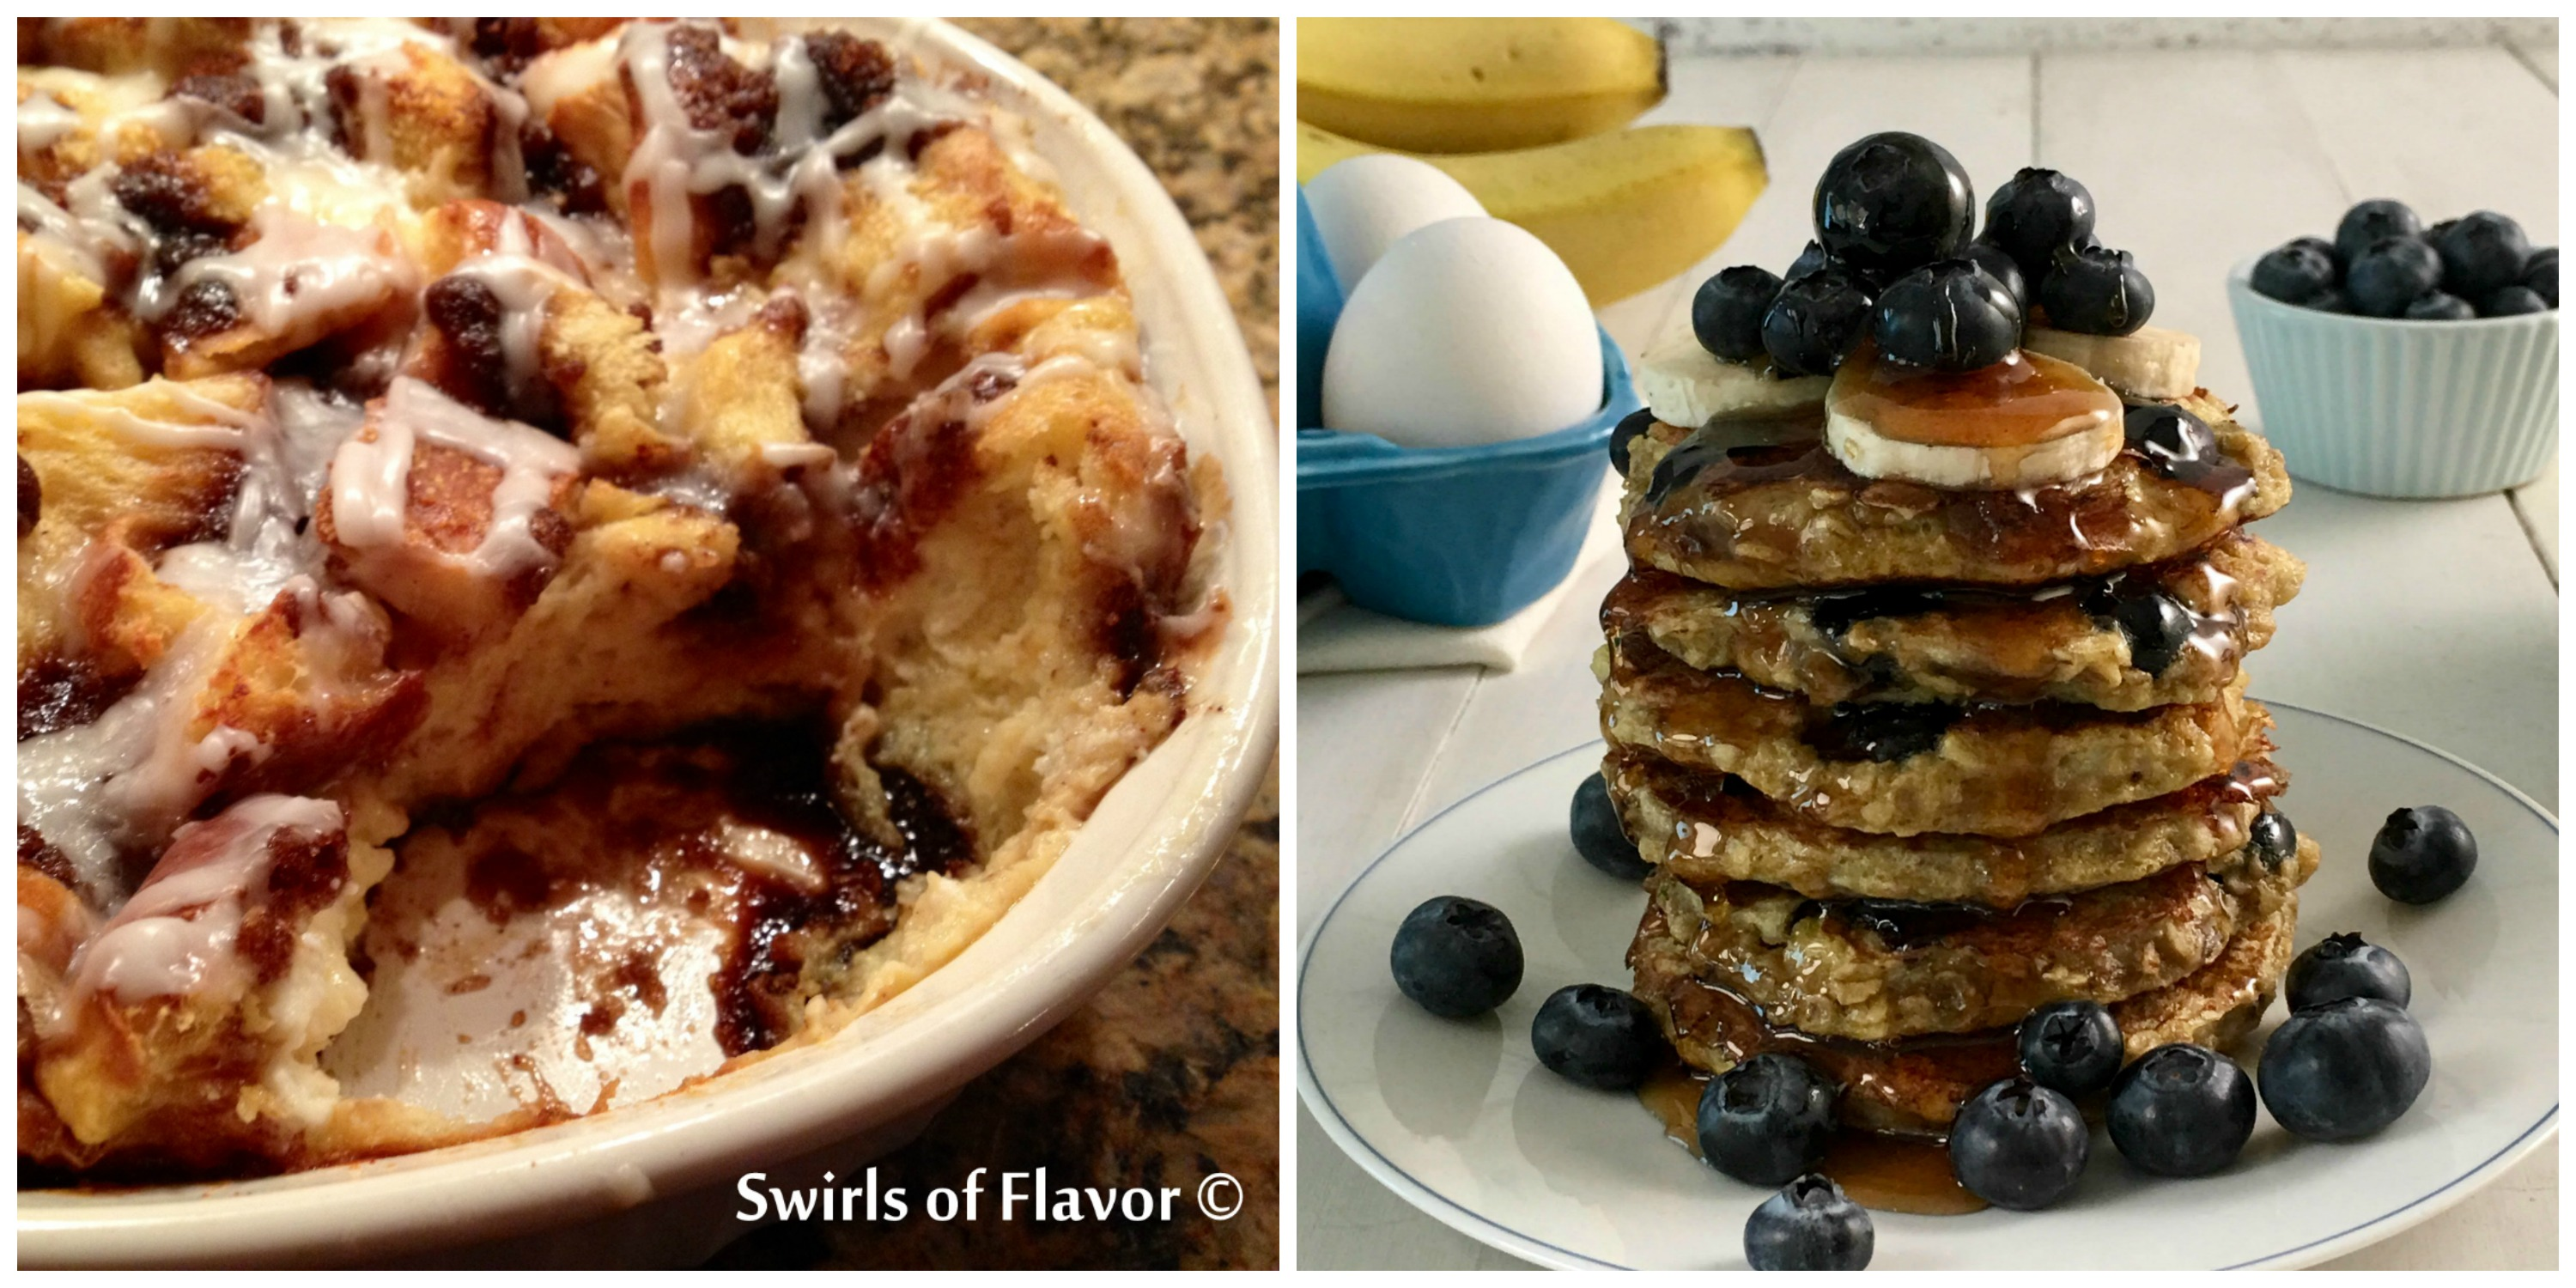 Cinnamon Bun Bread Pudding and Blueberry Pancakes